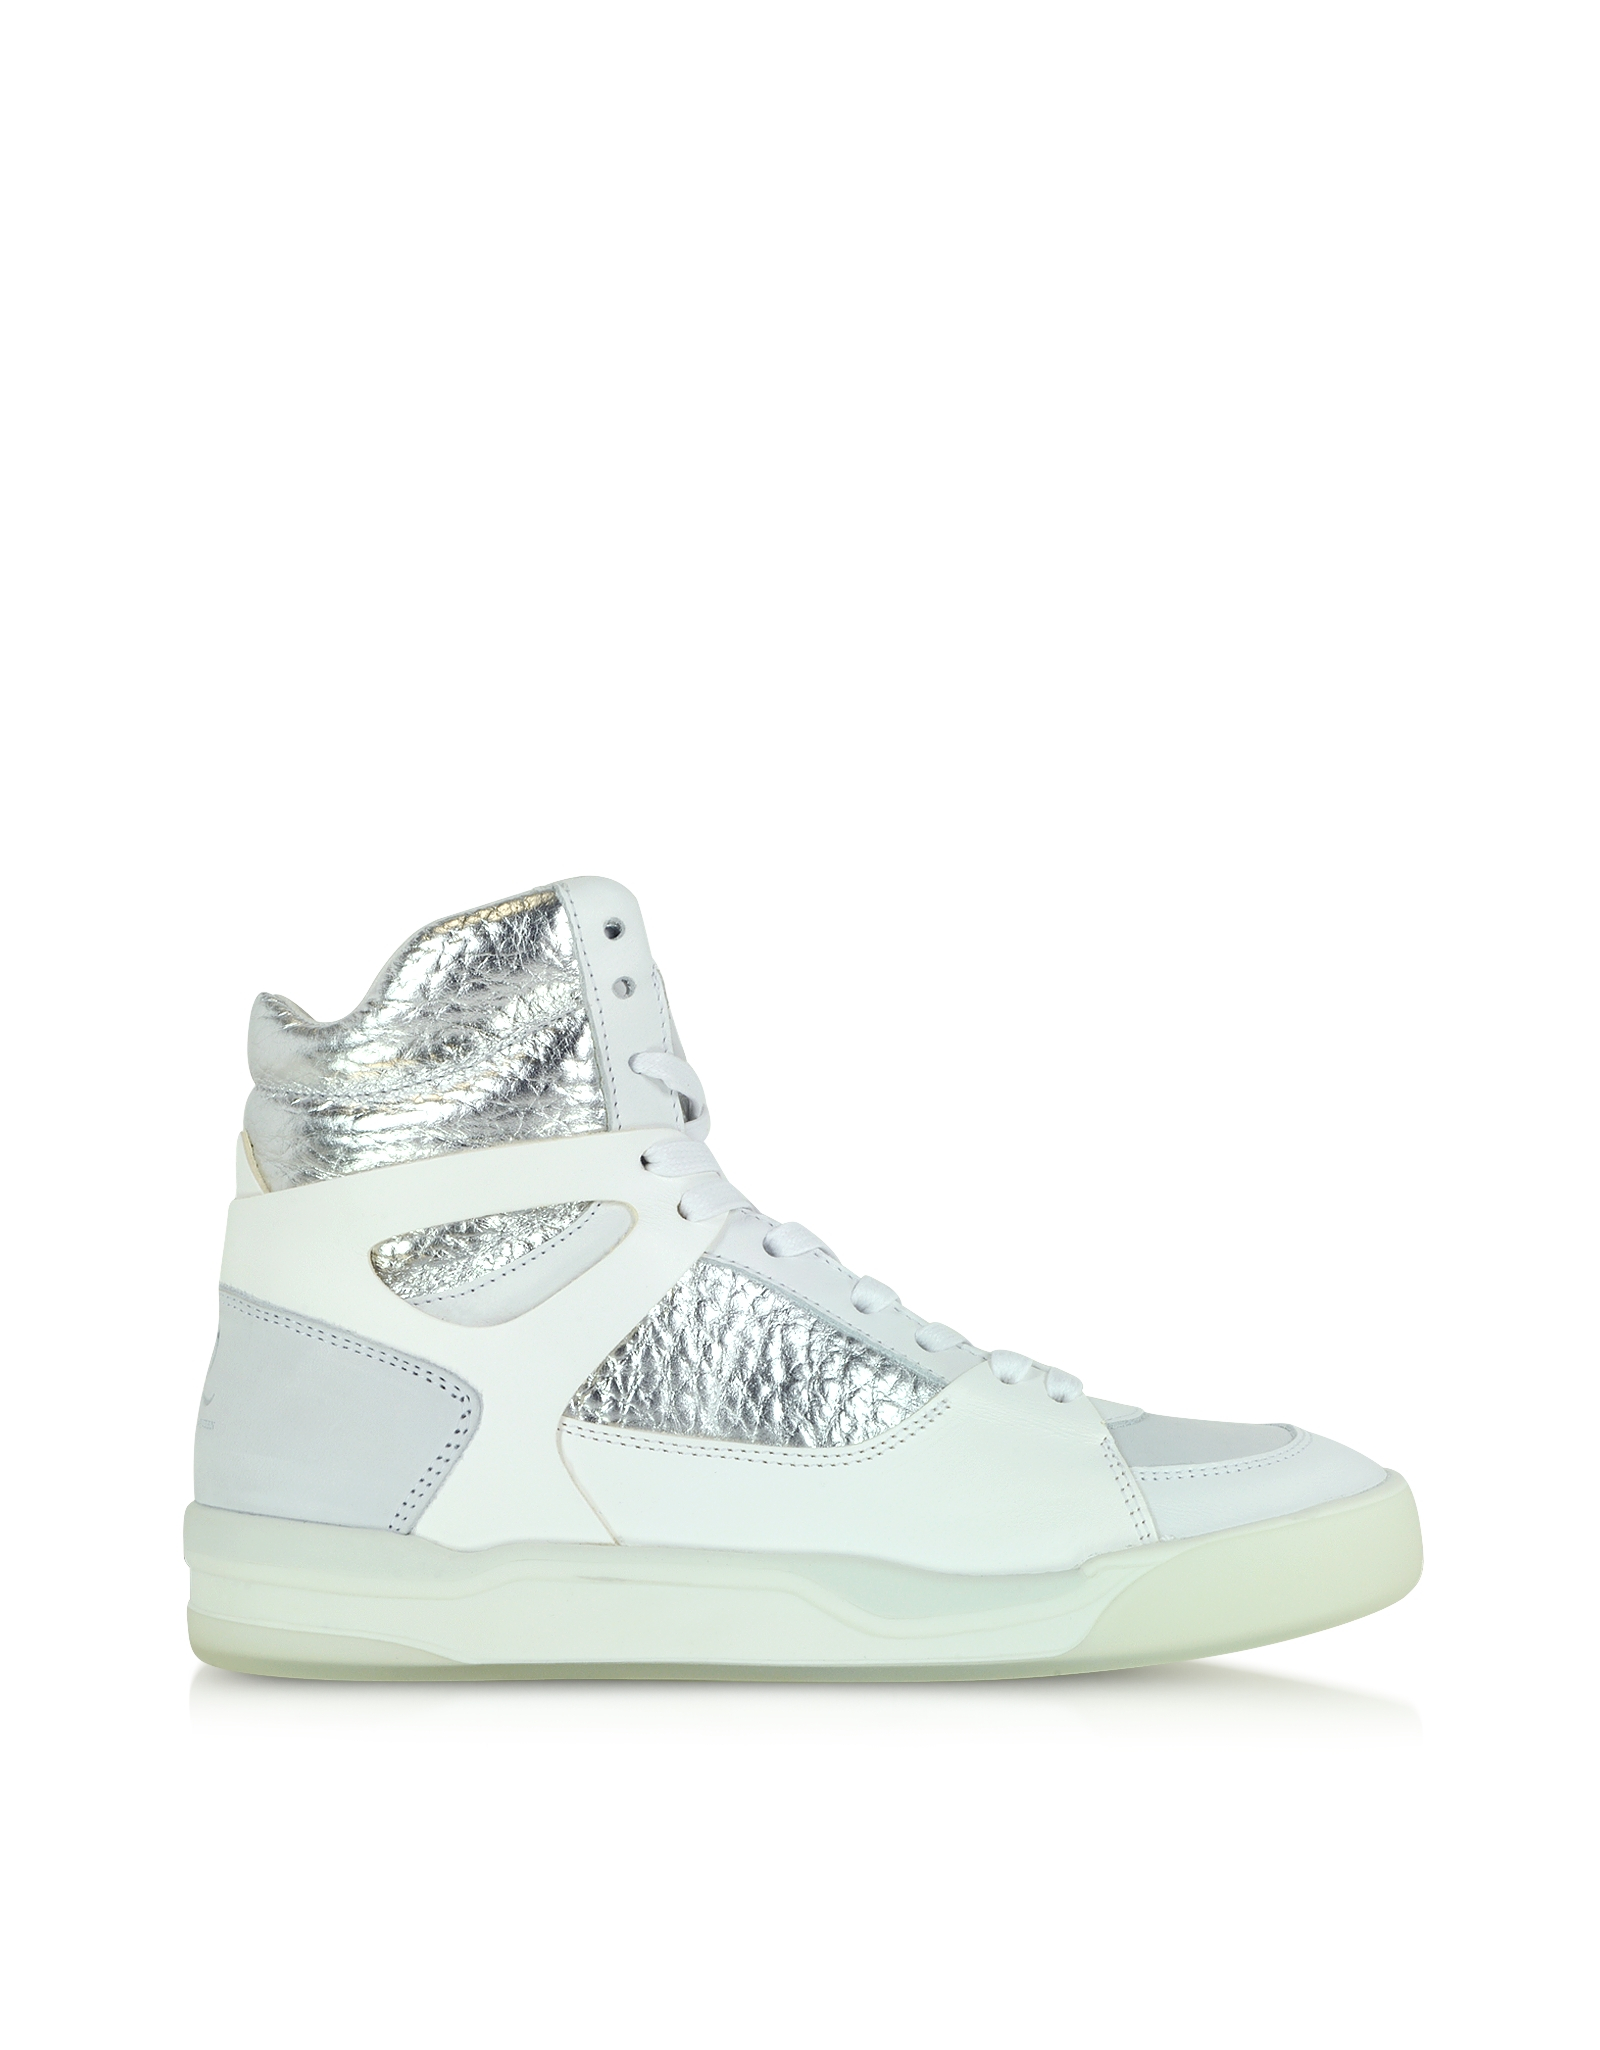 d907f427b8d Alexander Mcqueen X Puma Move Leather High-Top Sneakers in White - Lyst